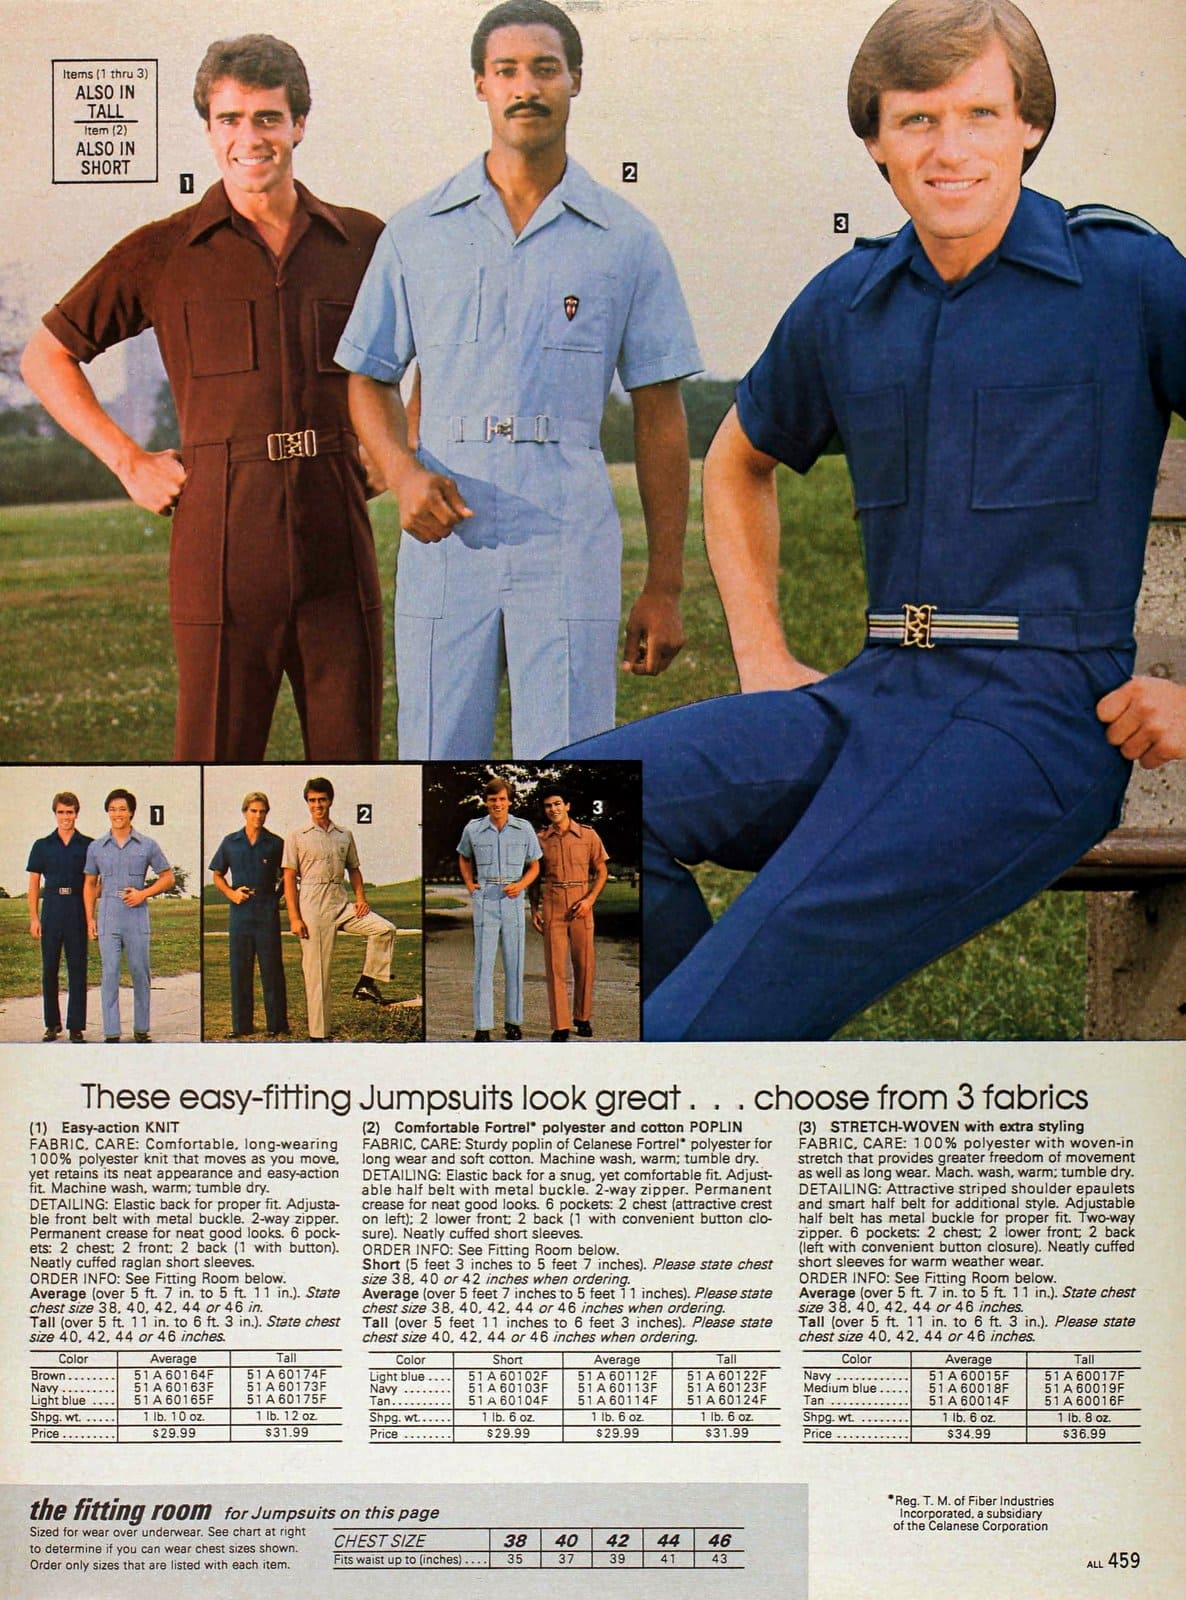 1980s menswear clothing from Sears 1983 Jumpsuits for guys